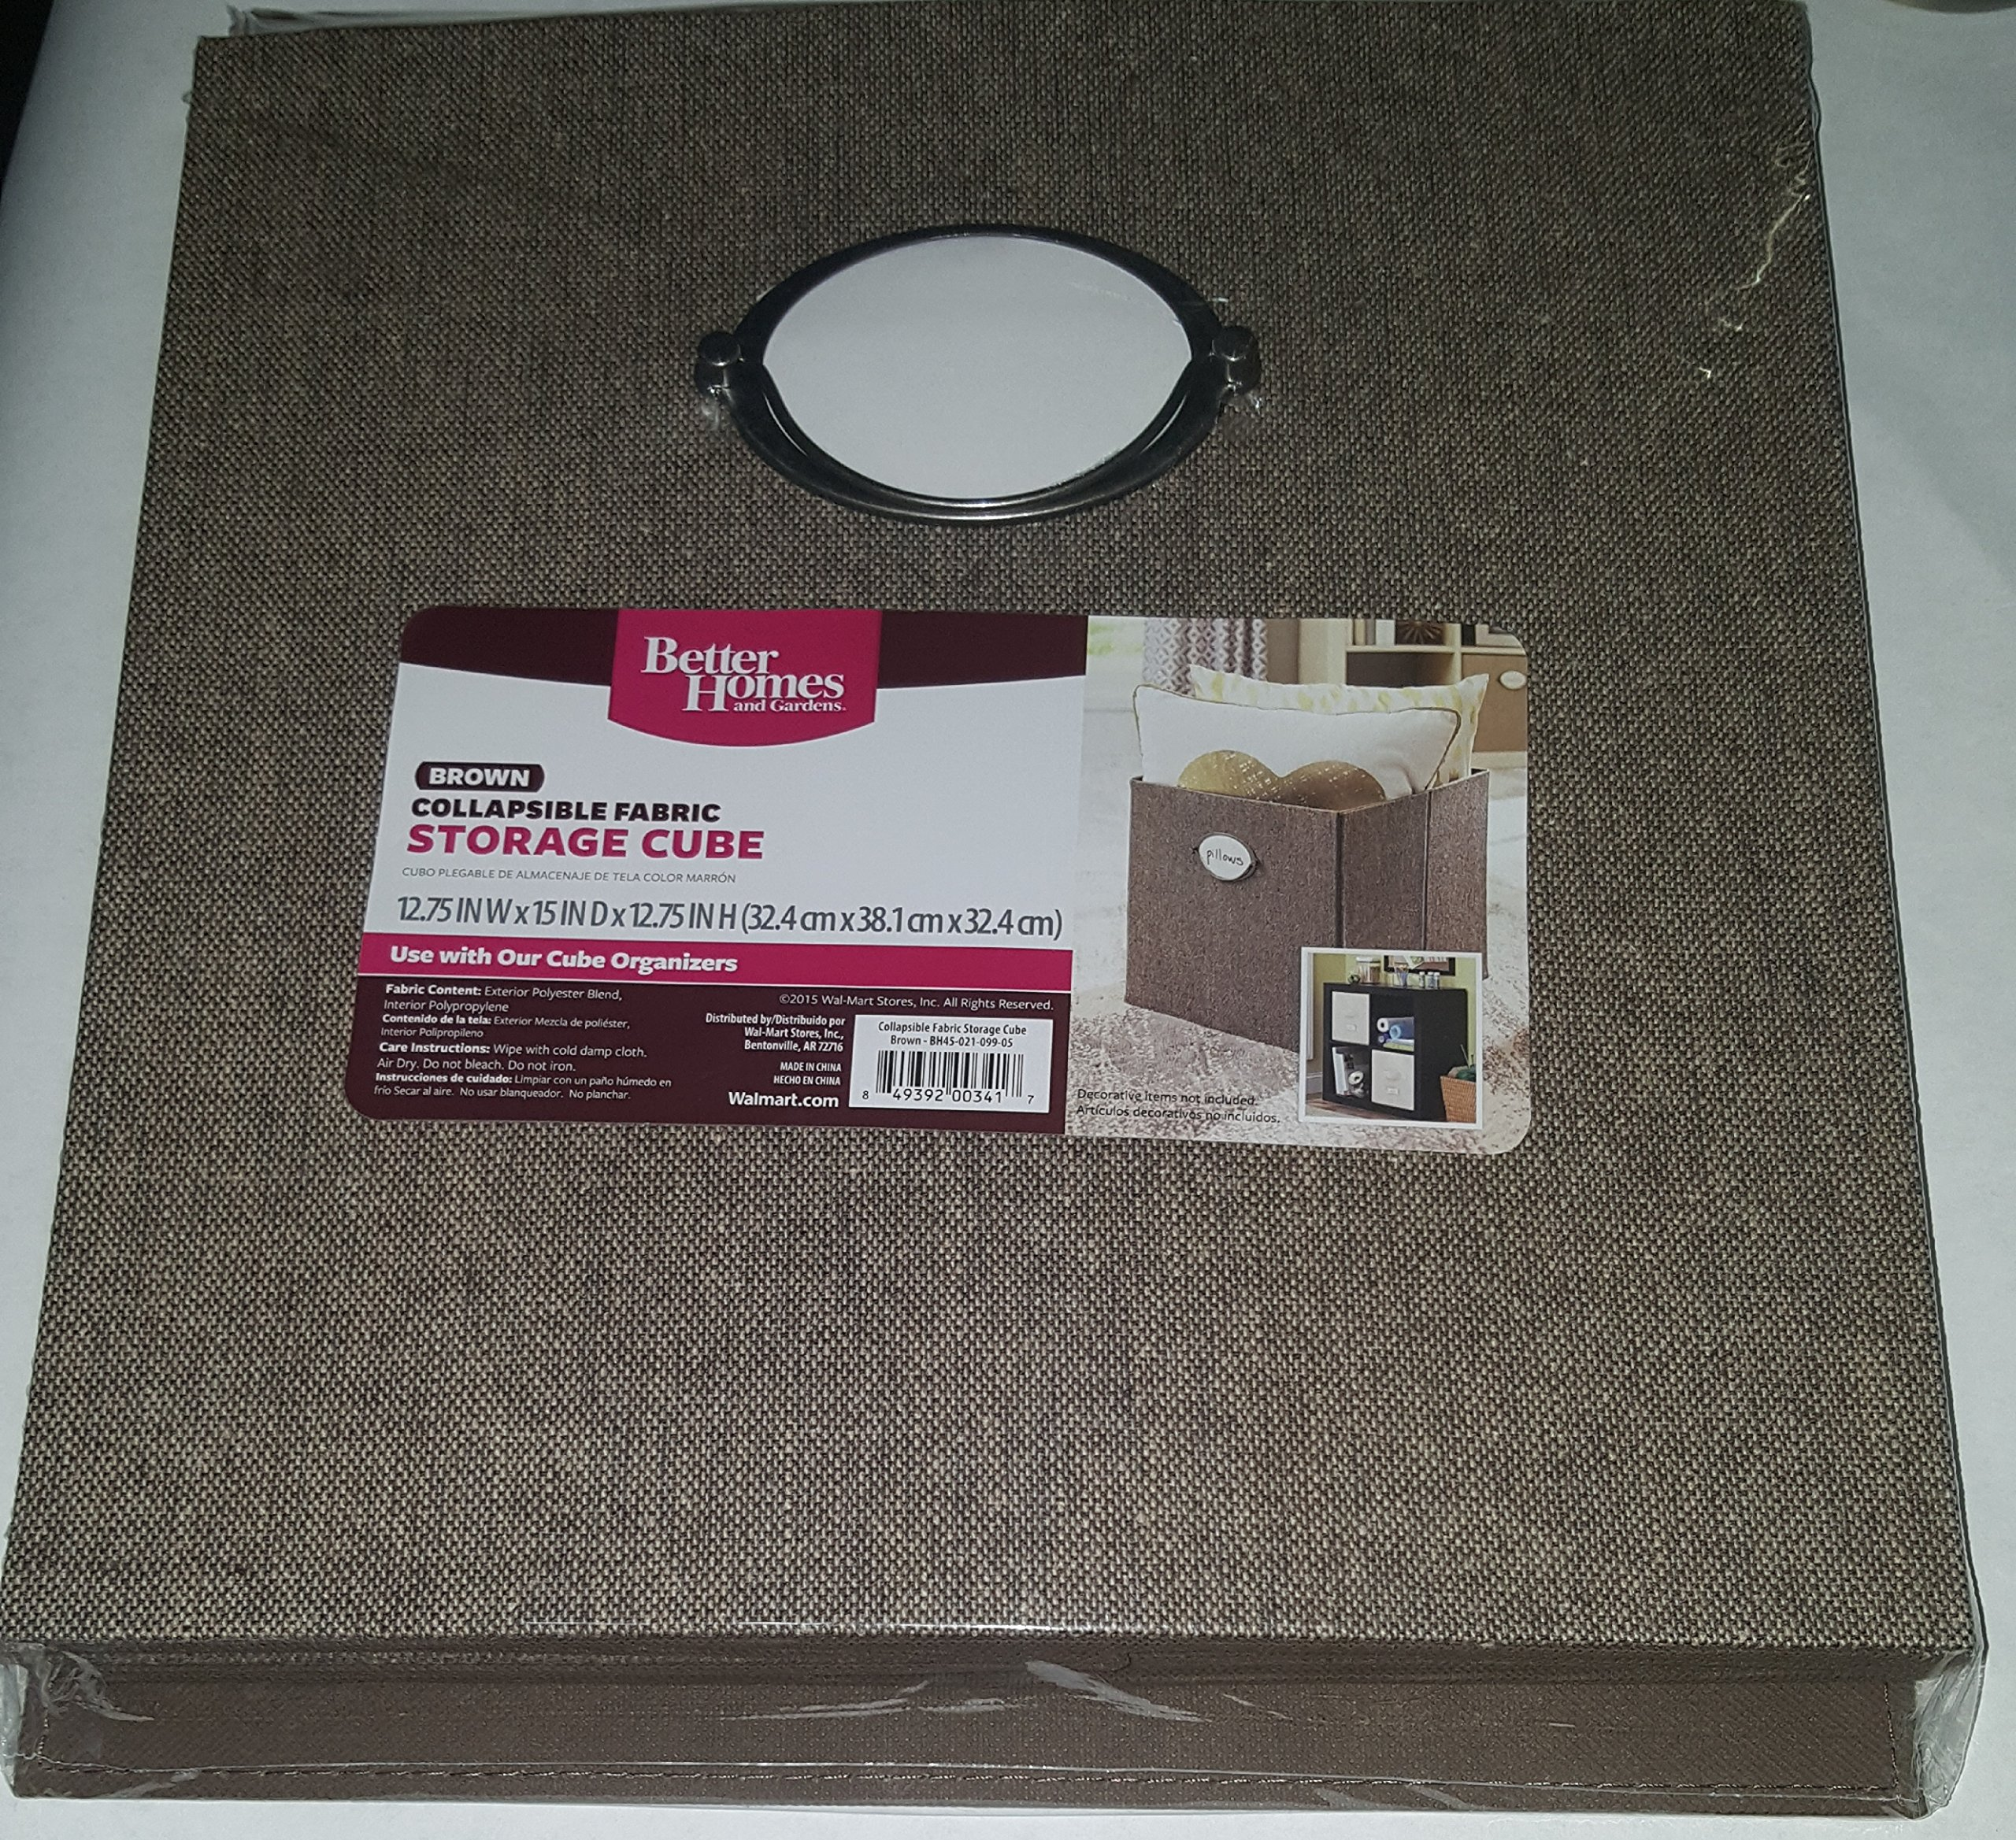 Better Homes and Gardens Collapsible Fabric Storage Cube (BROWN)